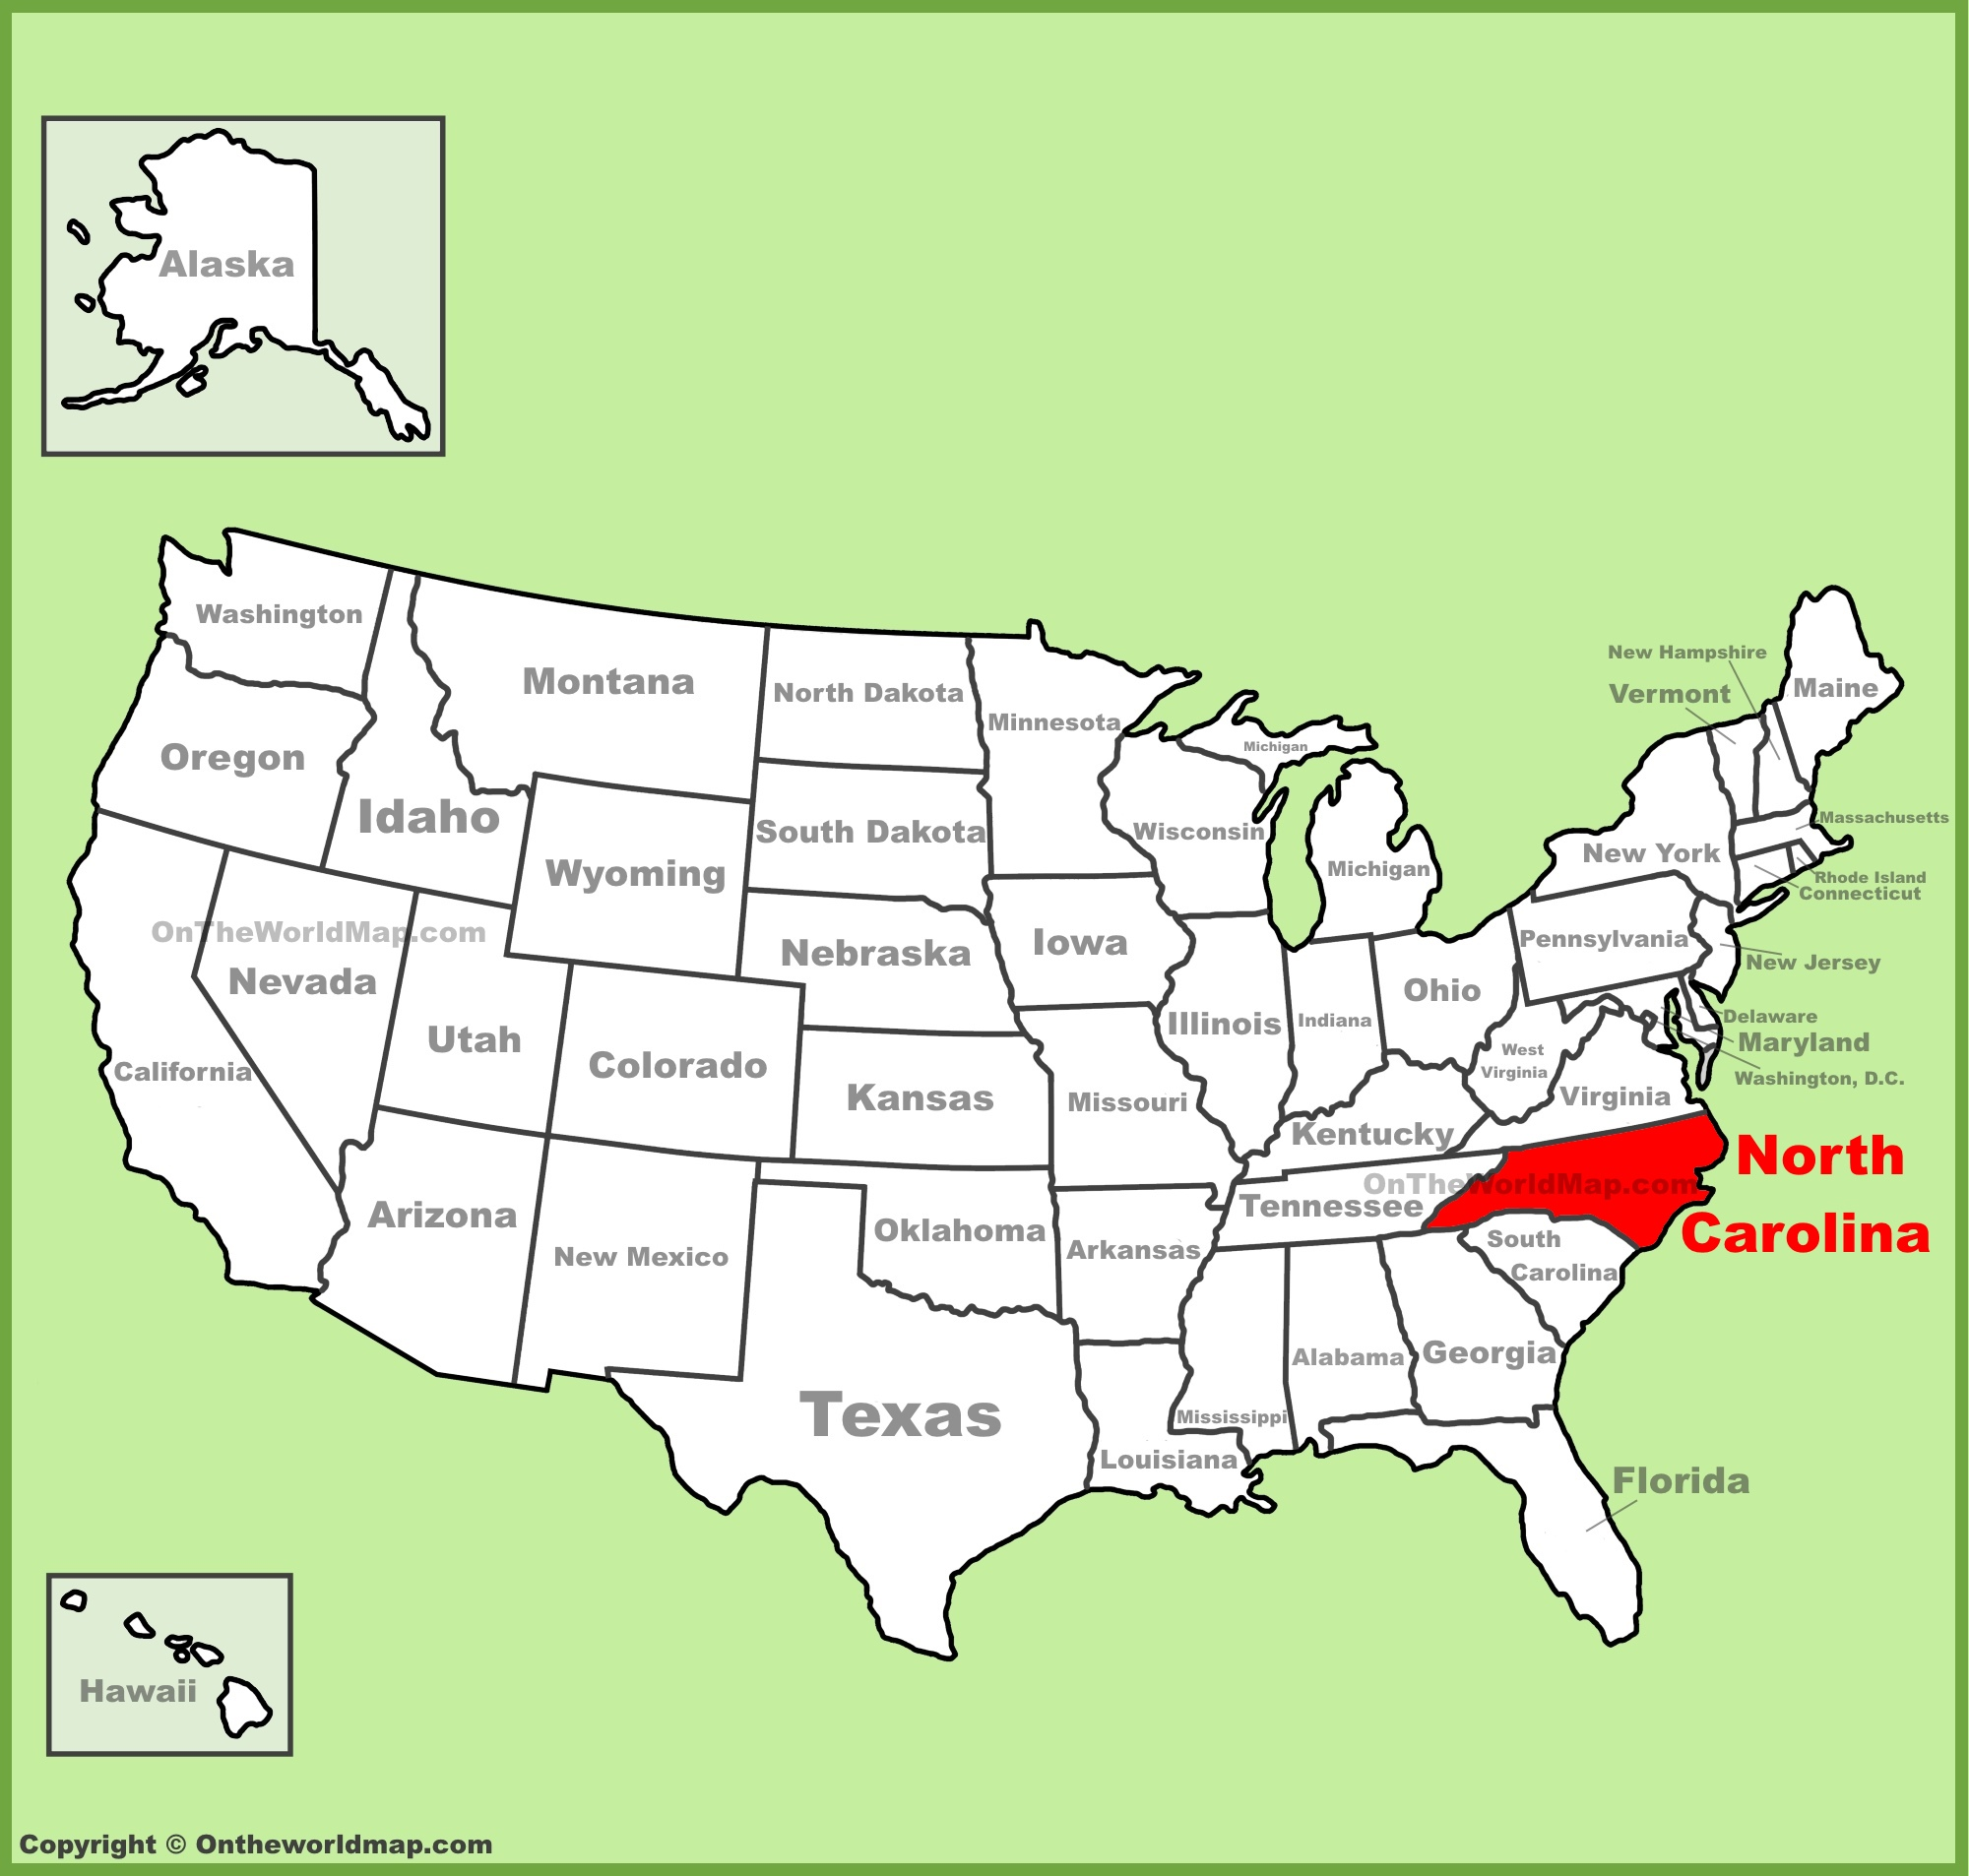 North Carolina State Maps | USA | Maps of North Carolina (NC)